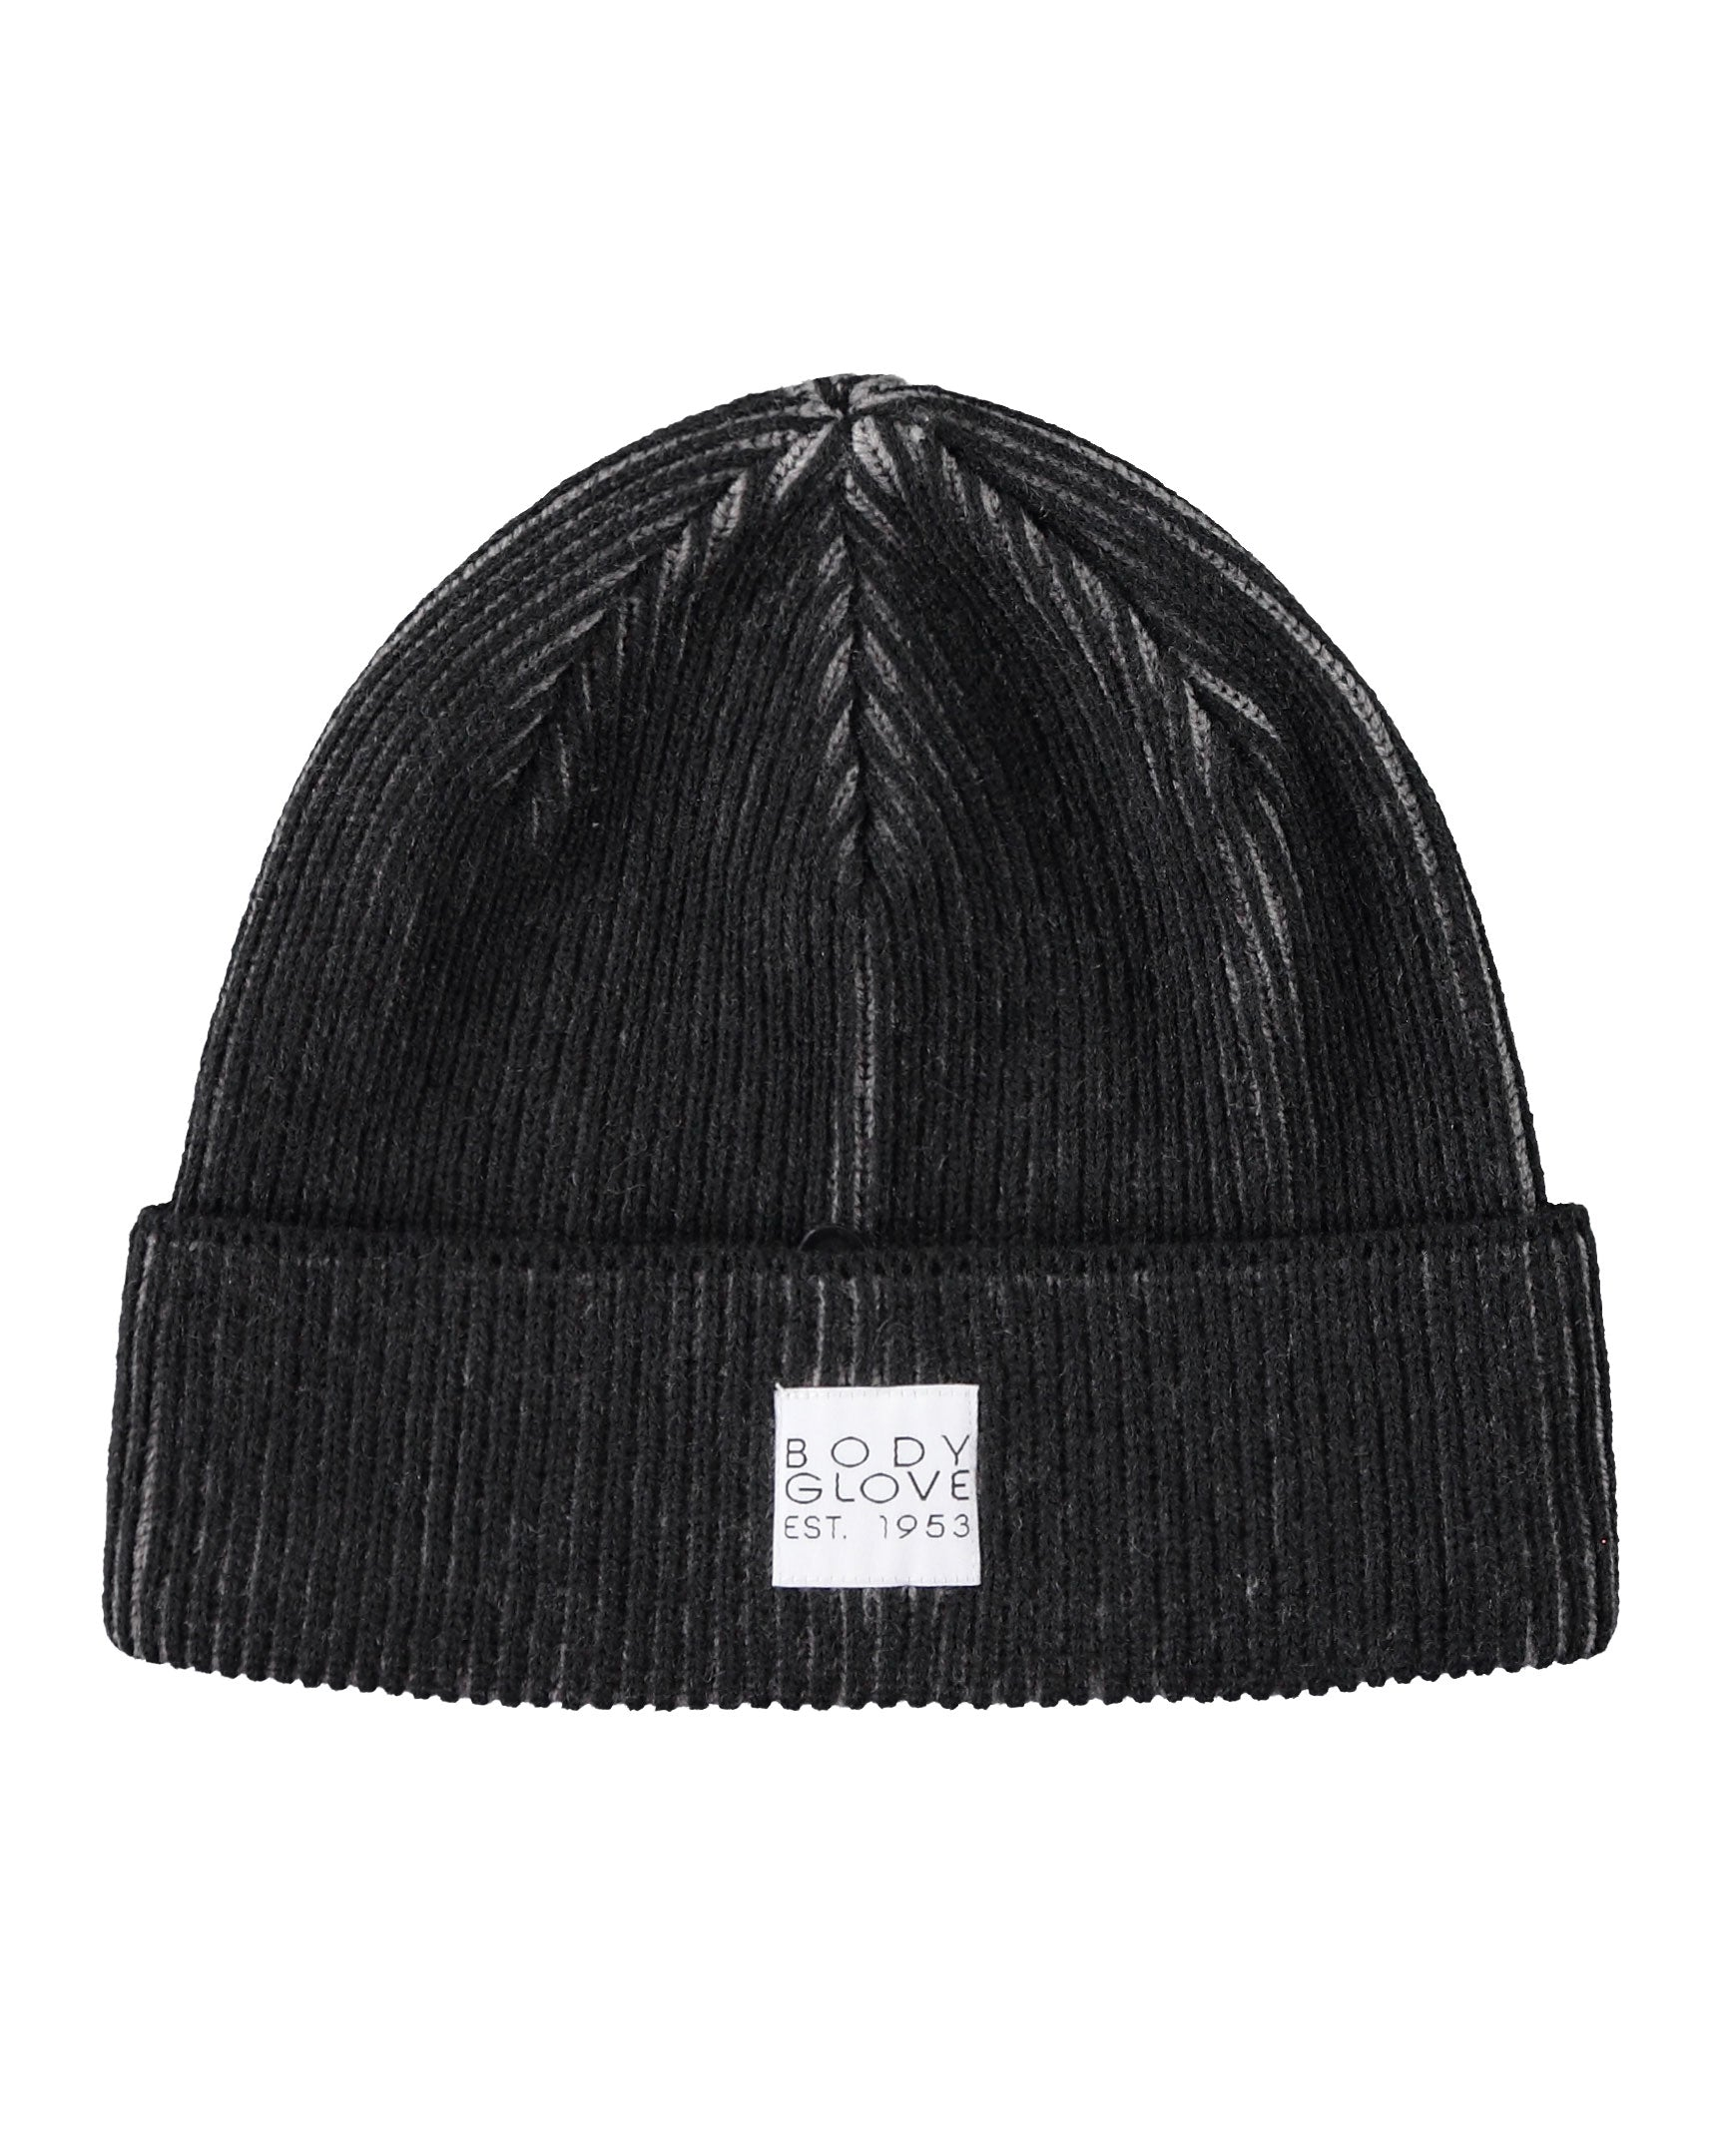 Unisex Two-Tone Ribbed Beanie with Woven Label - Black